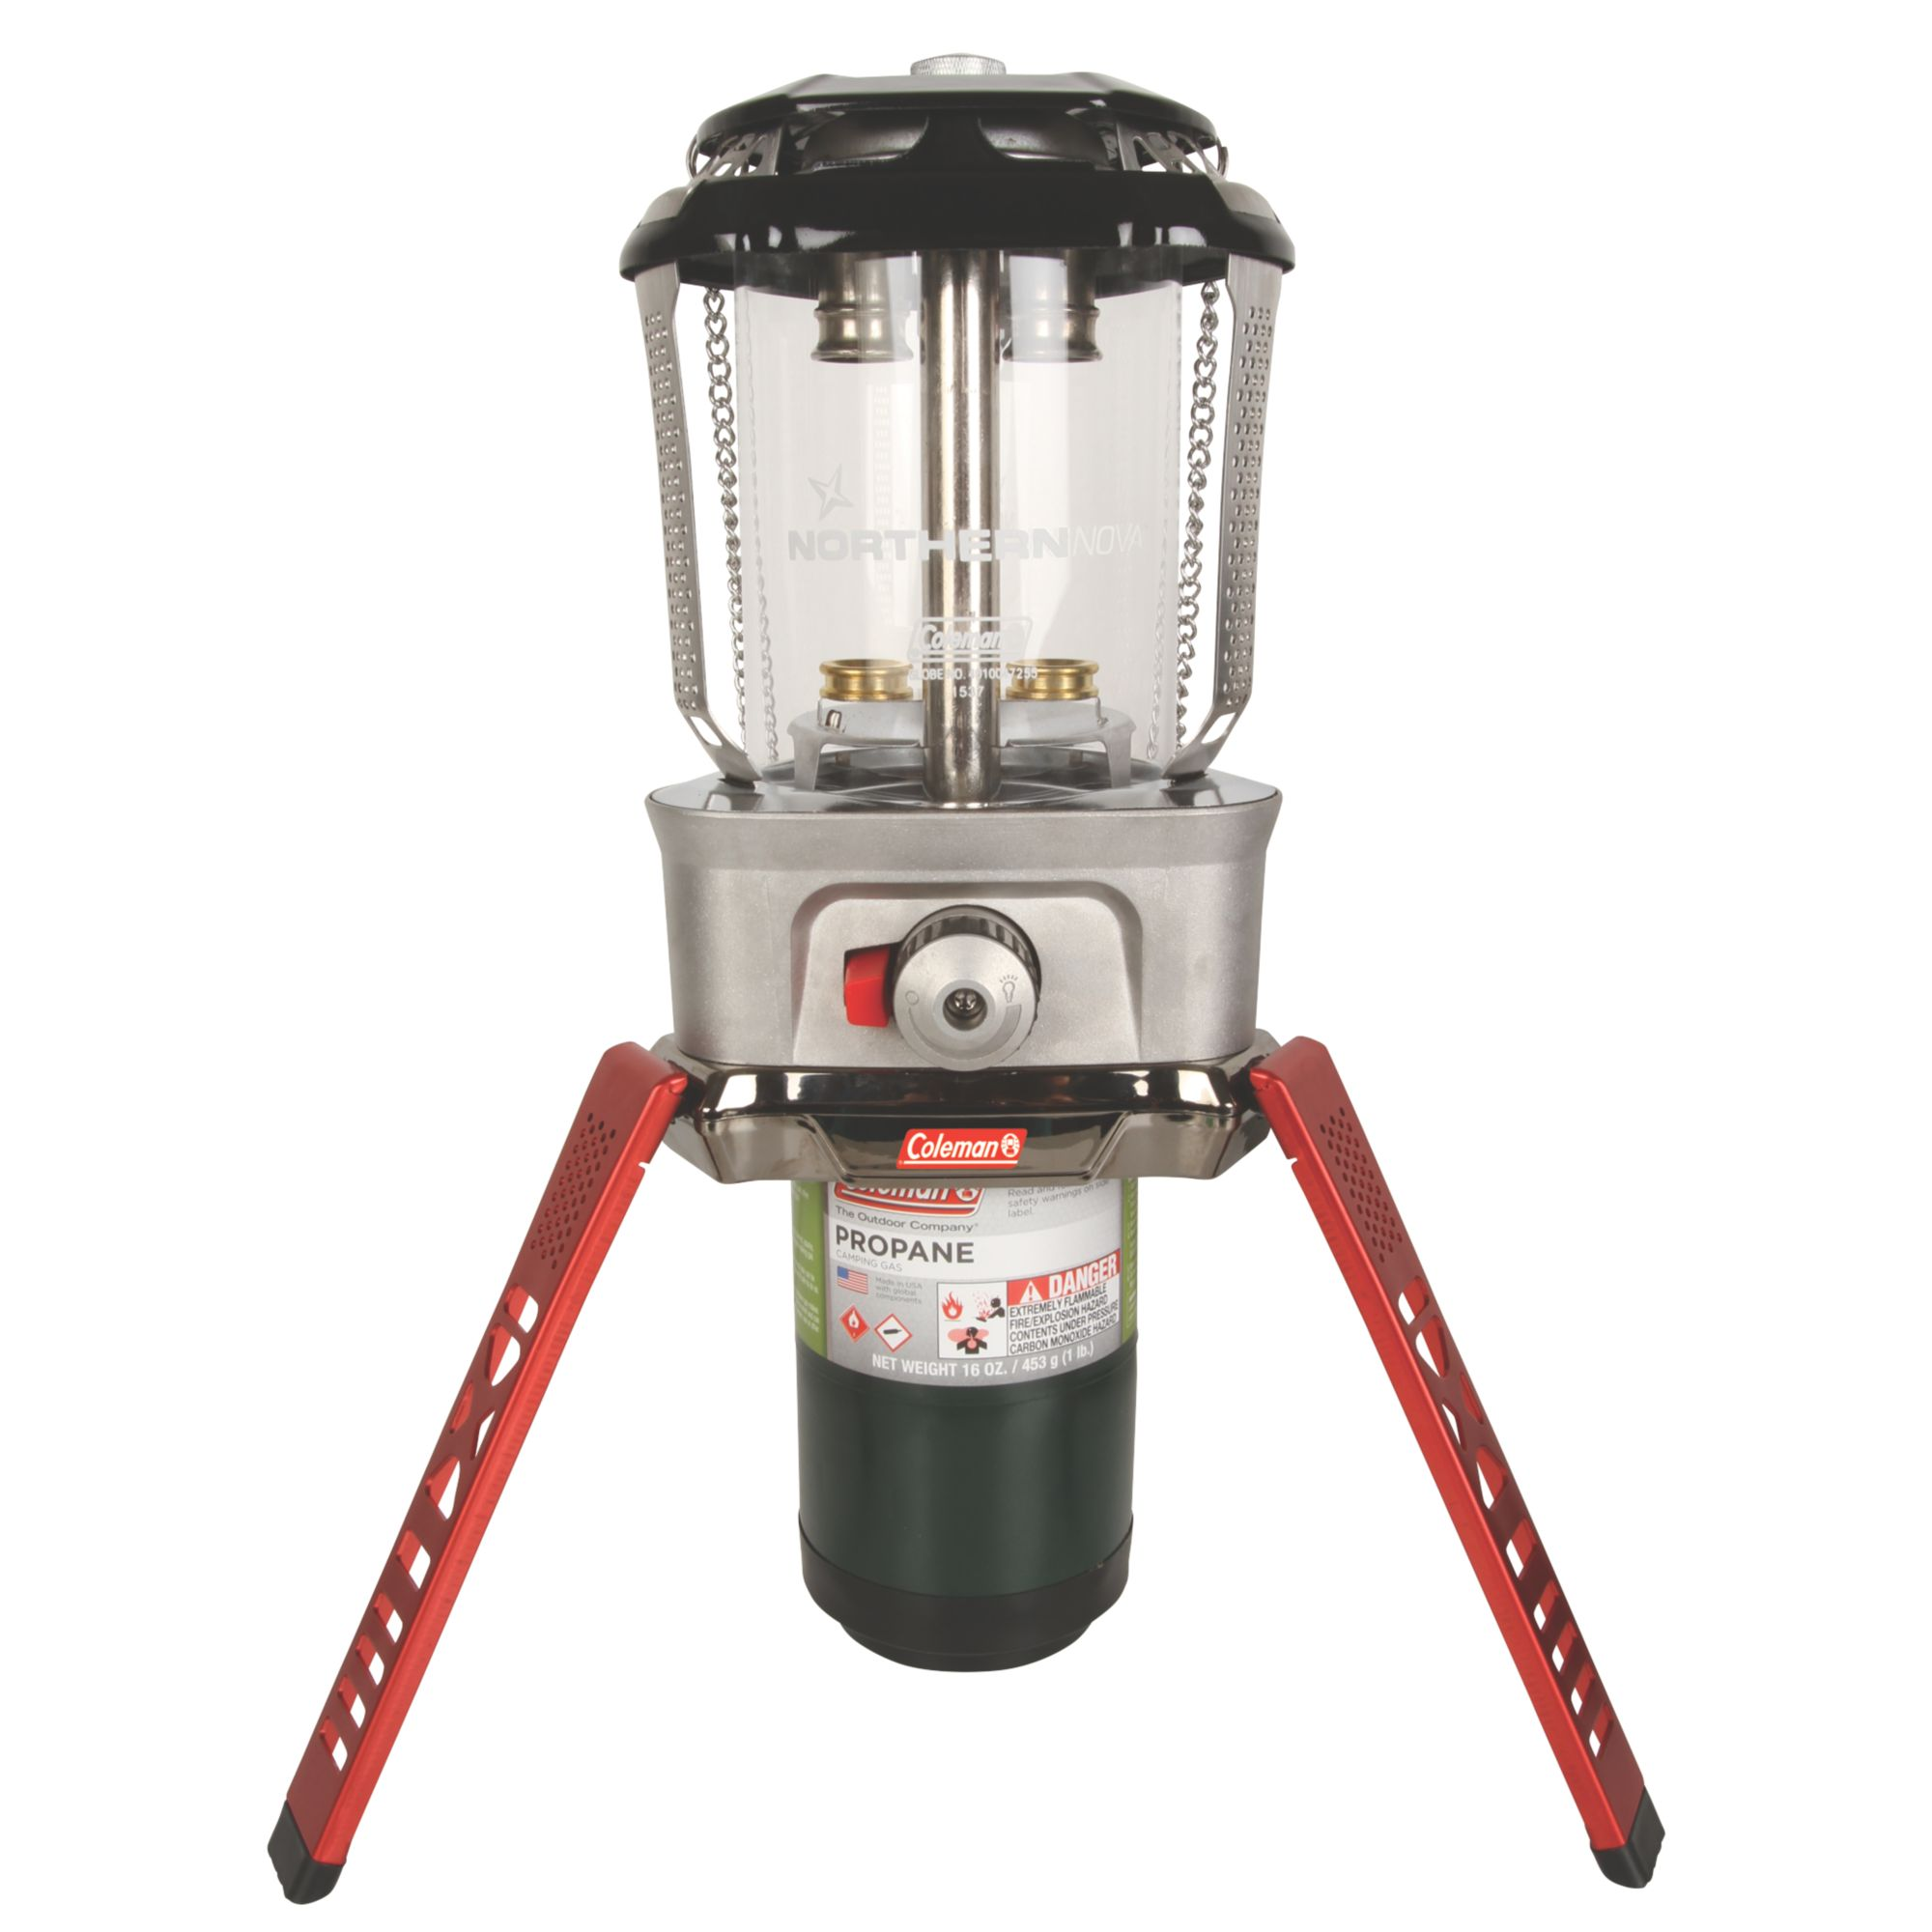 Northern Nova Propane Lantern With Case